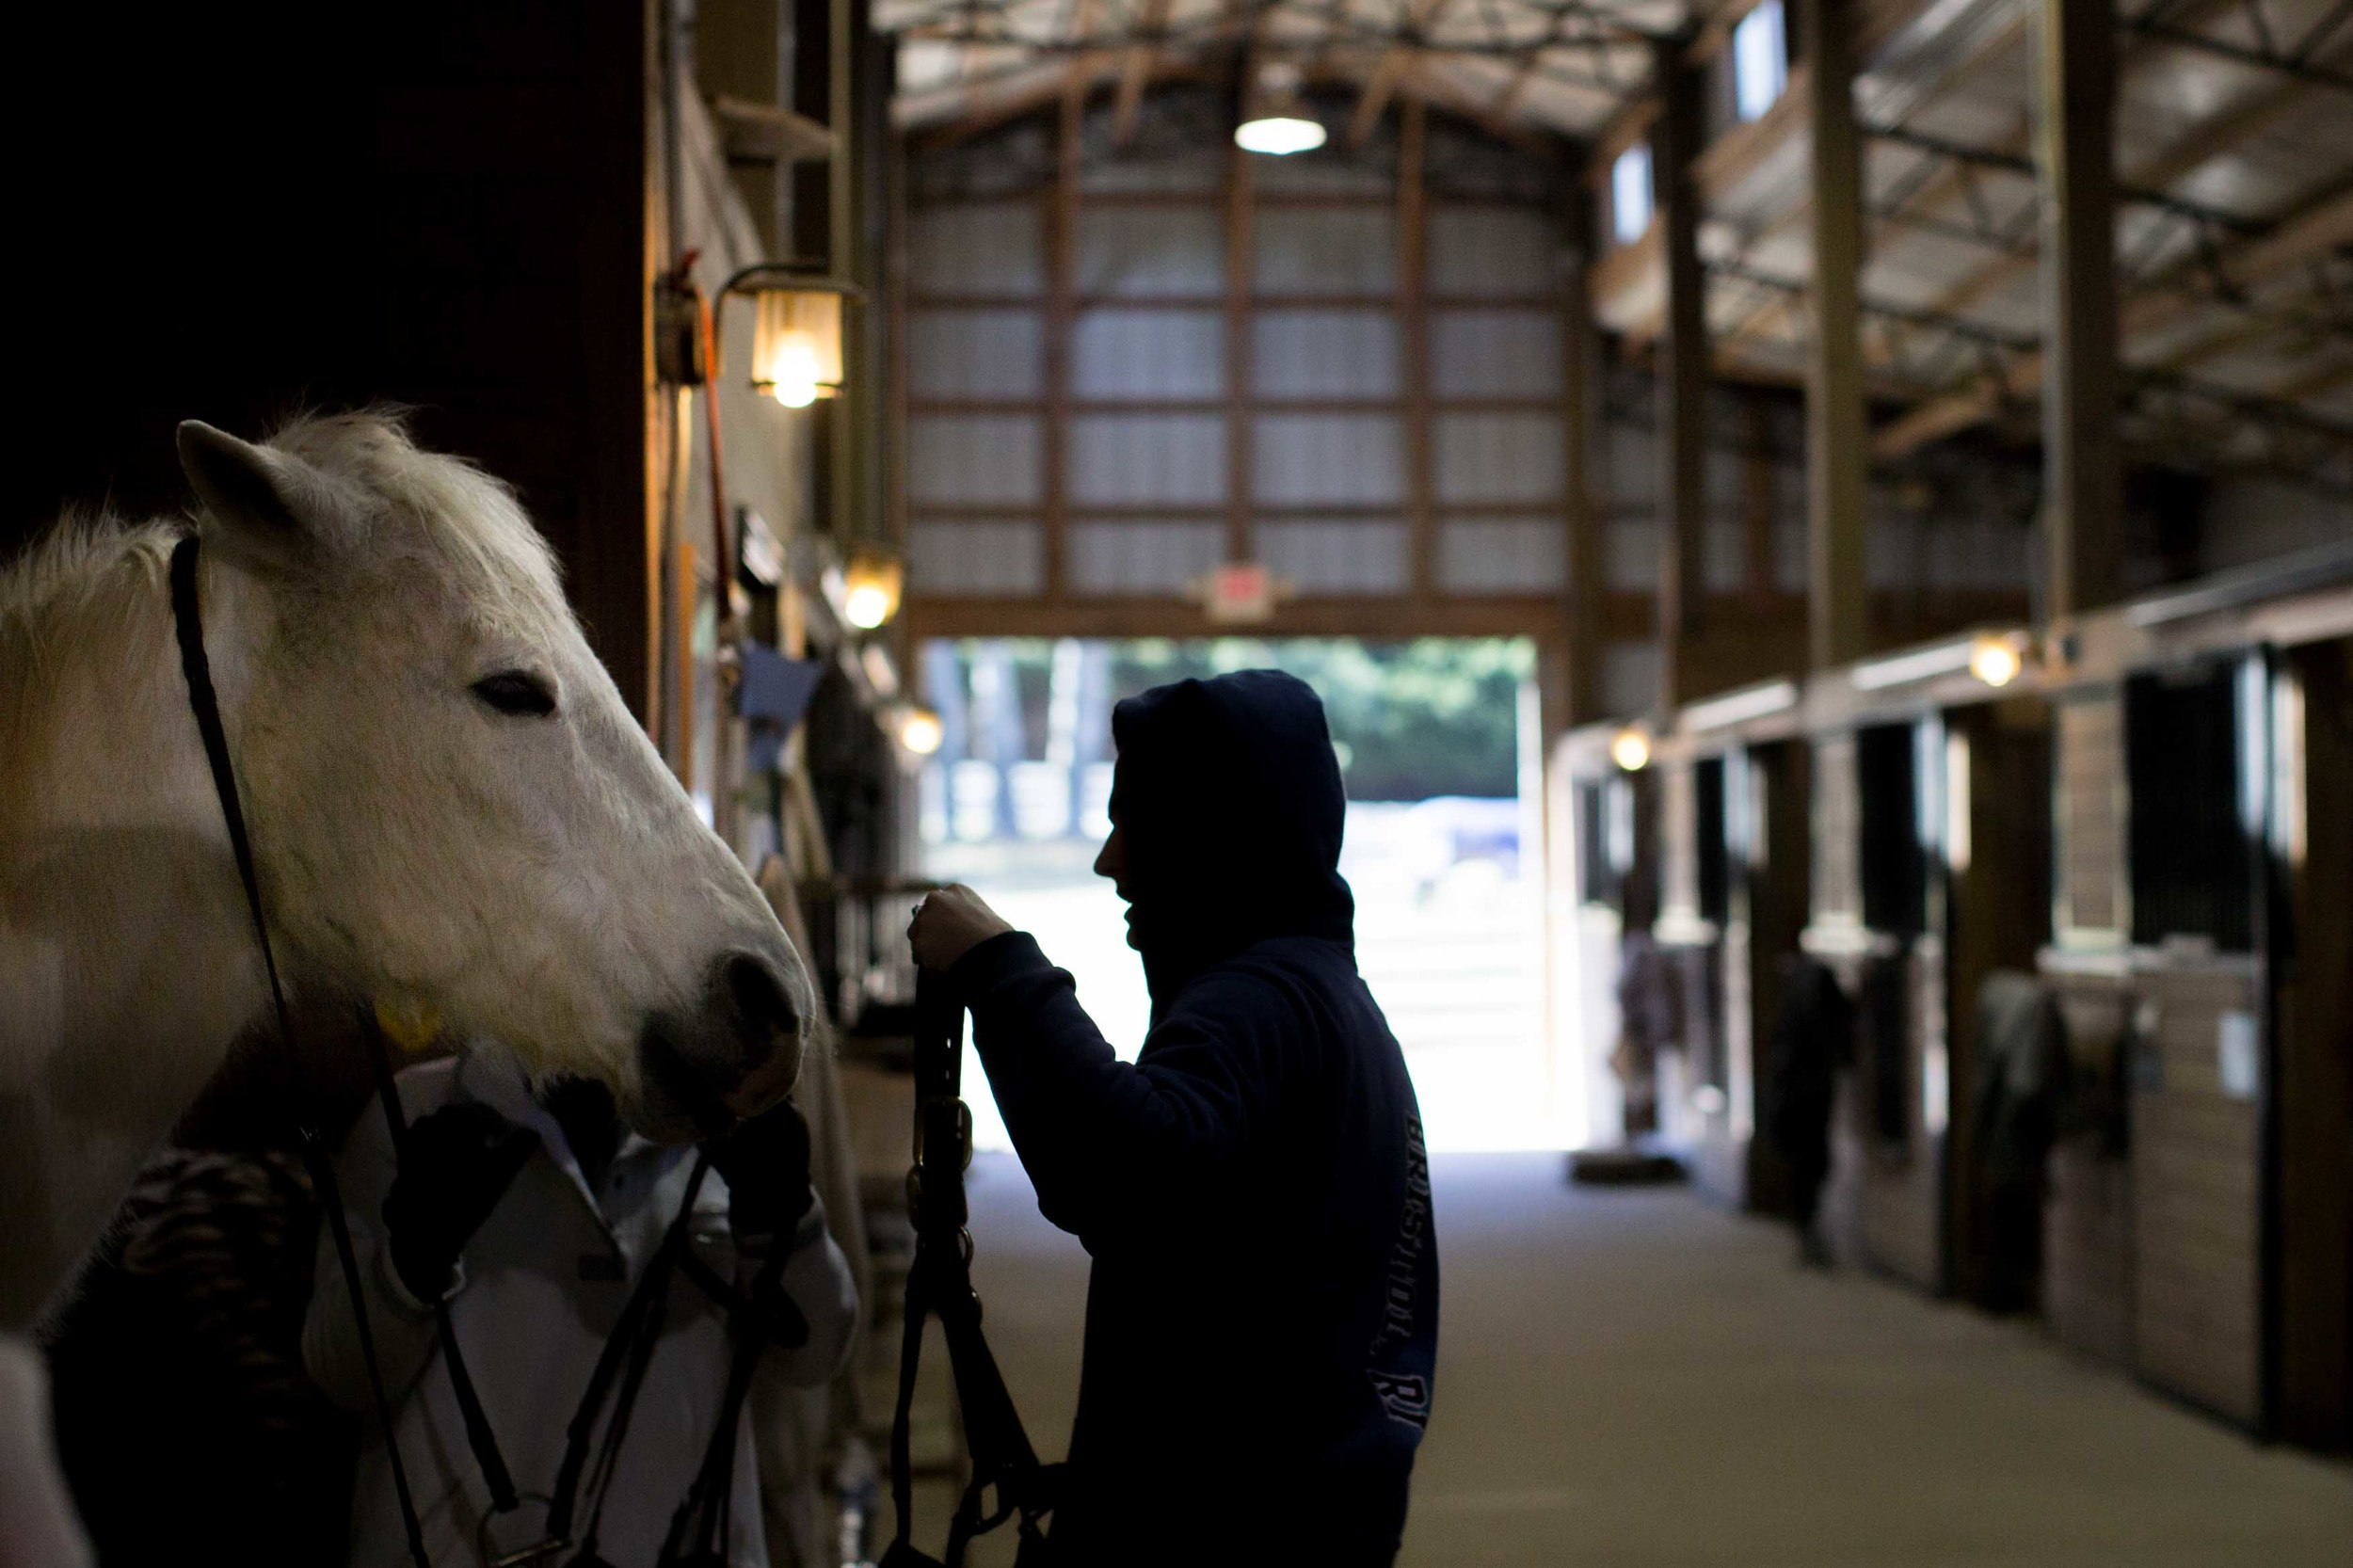 Niki McDonnell prepares a horse for riding lessons inside a horse stable on a cold day, Wednesday, Feb. 10, 2016, in Woodstock, Ga. (AP Photo/Branden Camp)